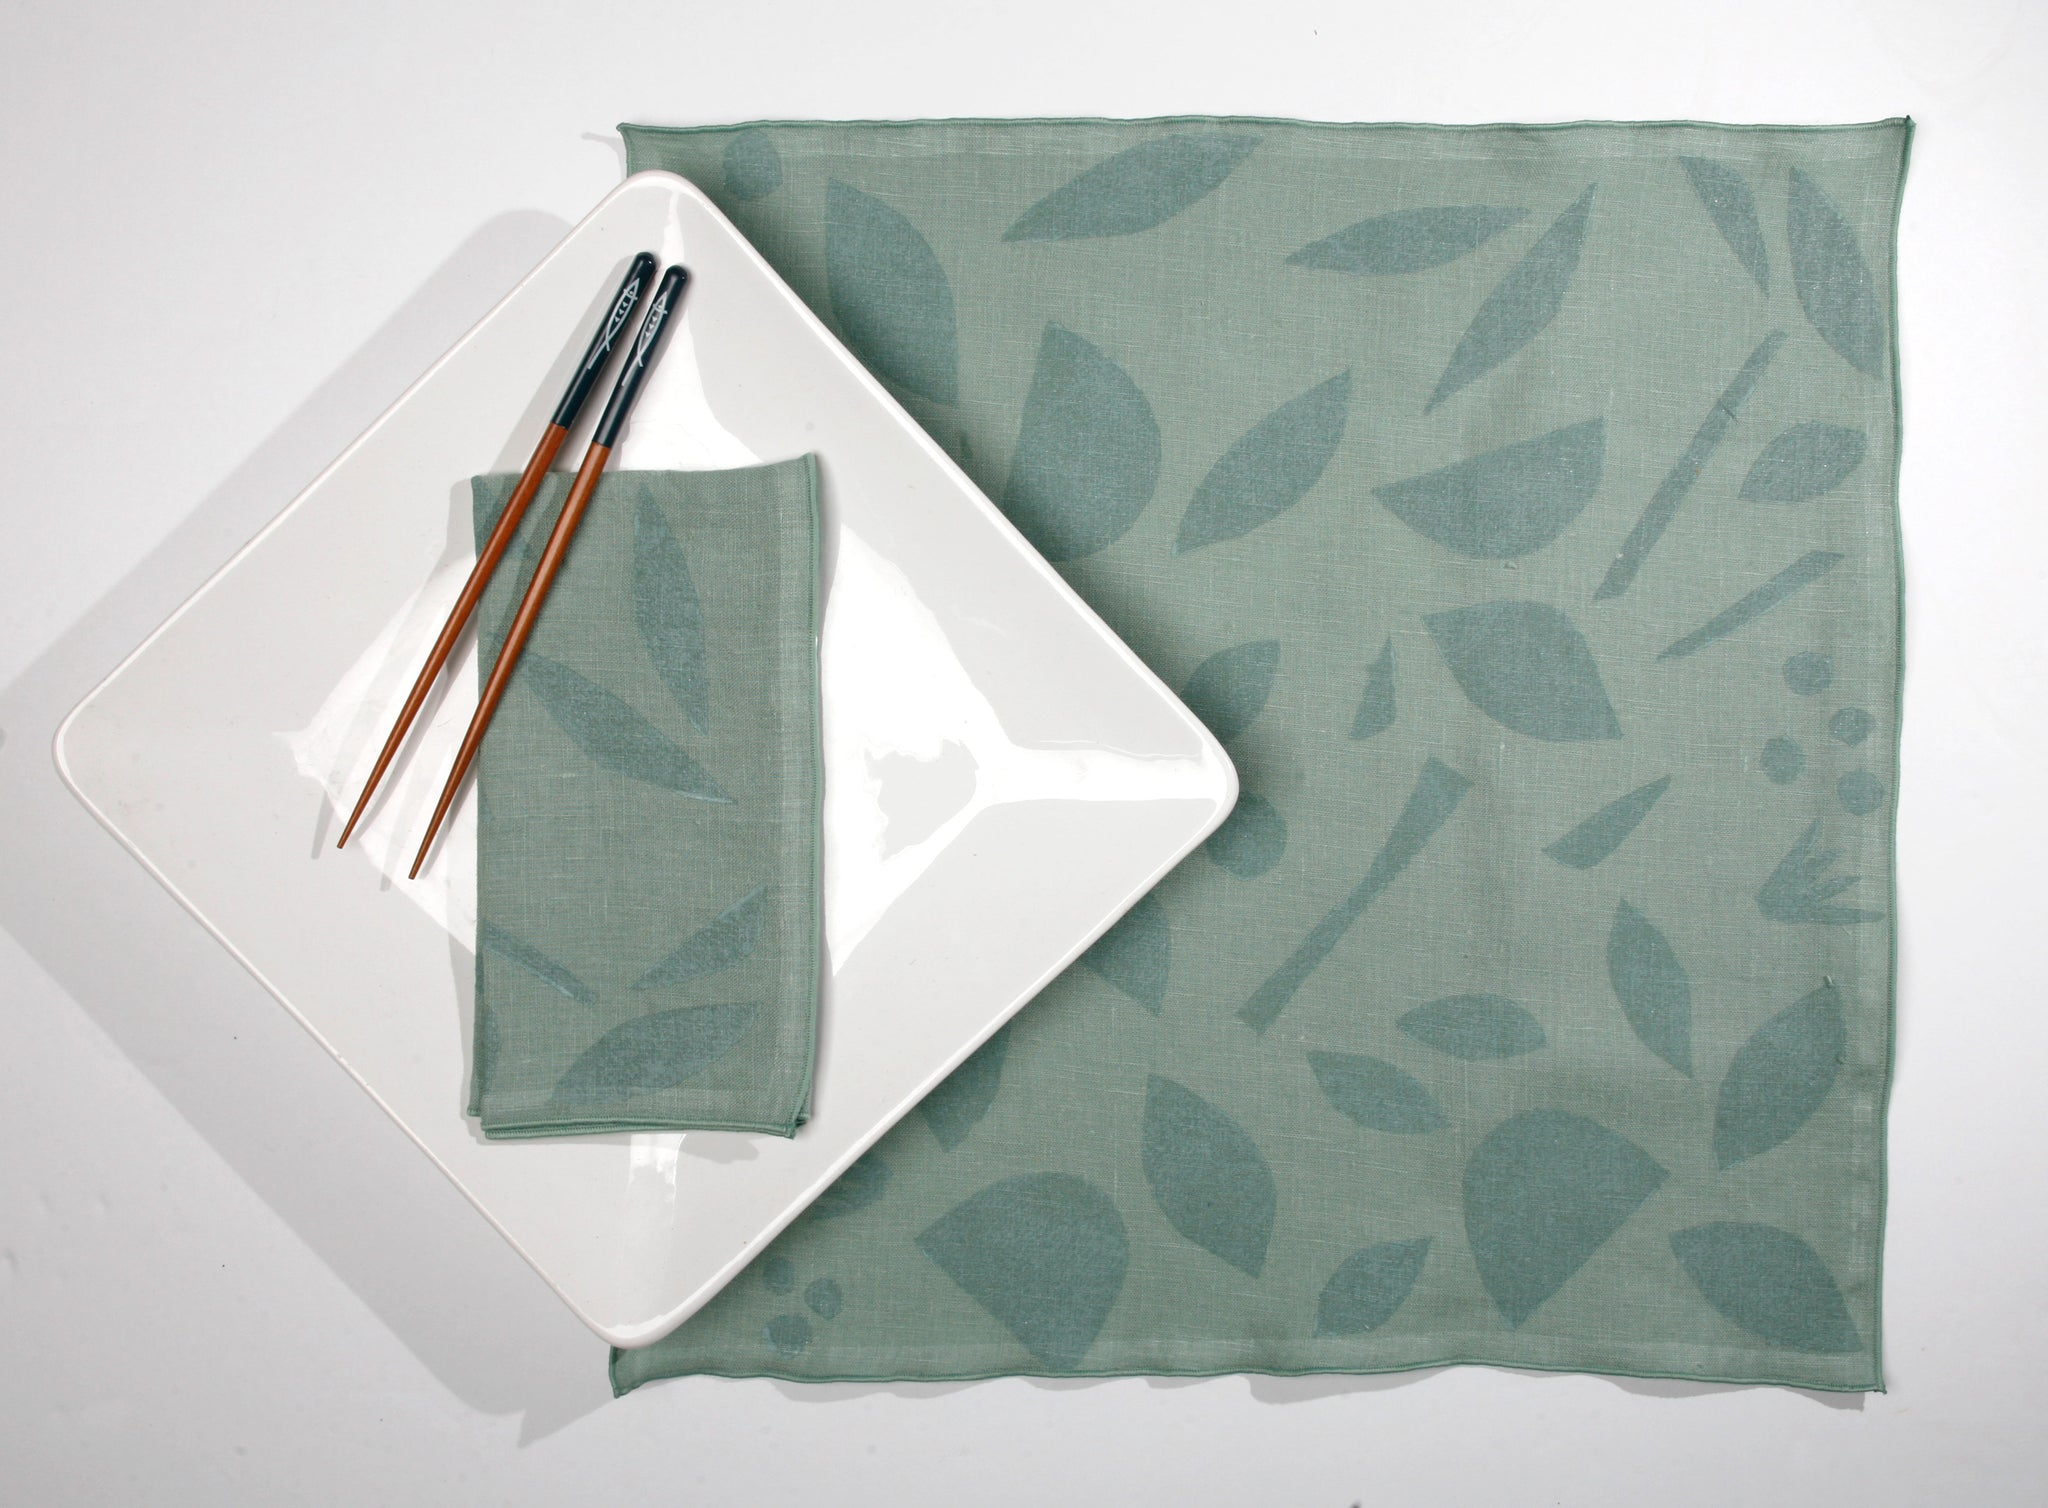 'Decon Floral' Block Printed Linen Dinner Napkins in Seaglass colorway